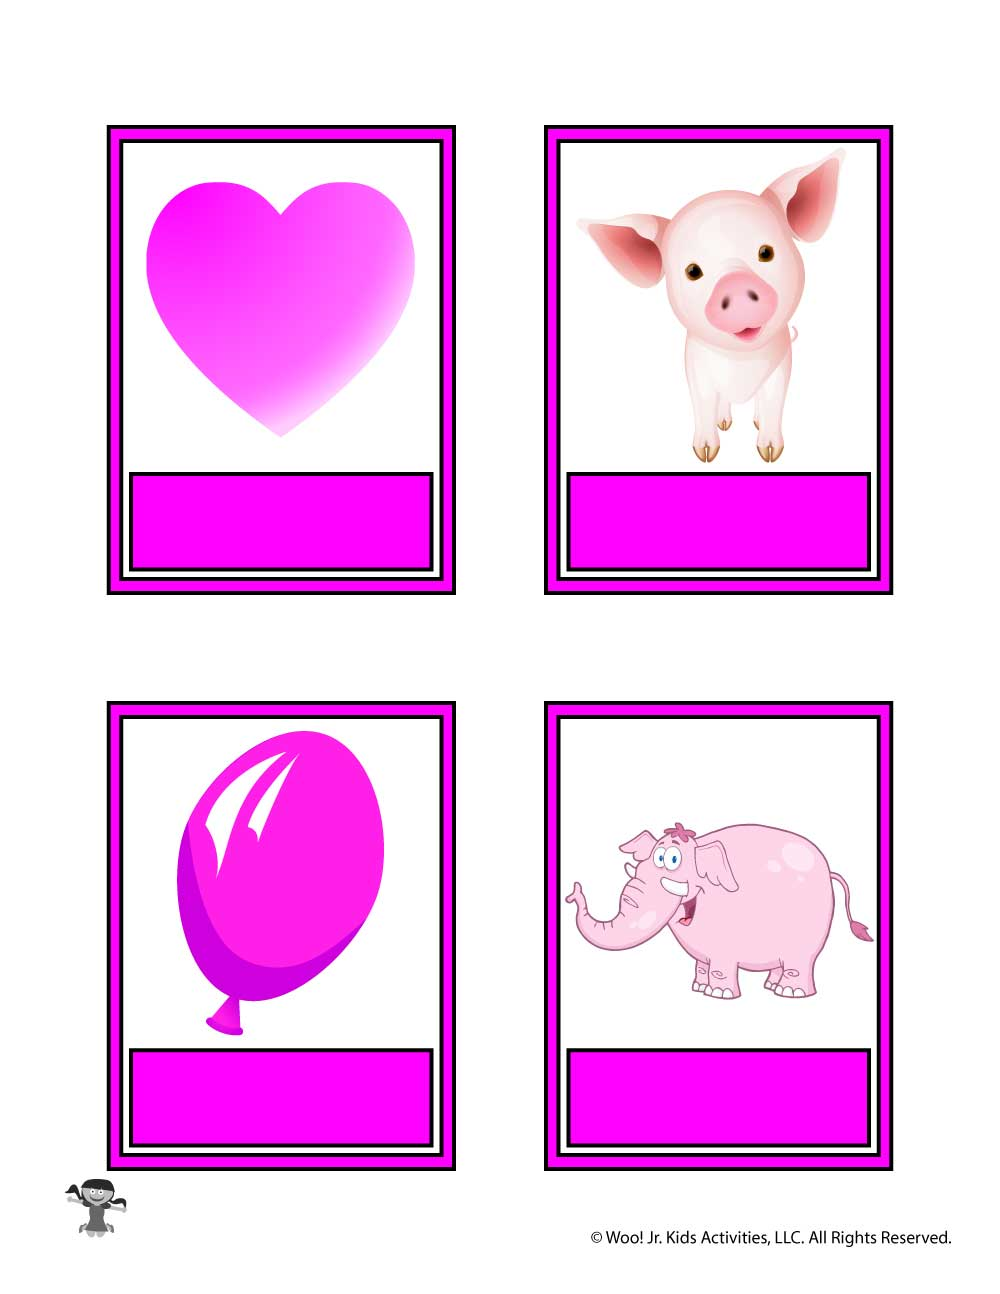 graphic relating to Color Flashcards Printable named Printable Crimson Shade Flashcard No Words and phrases Woo! Jr. Little ones